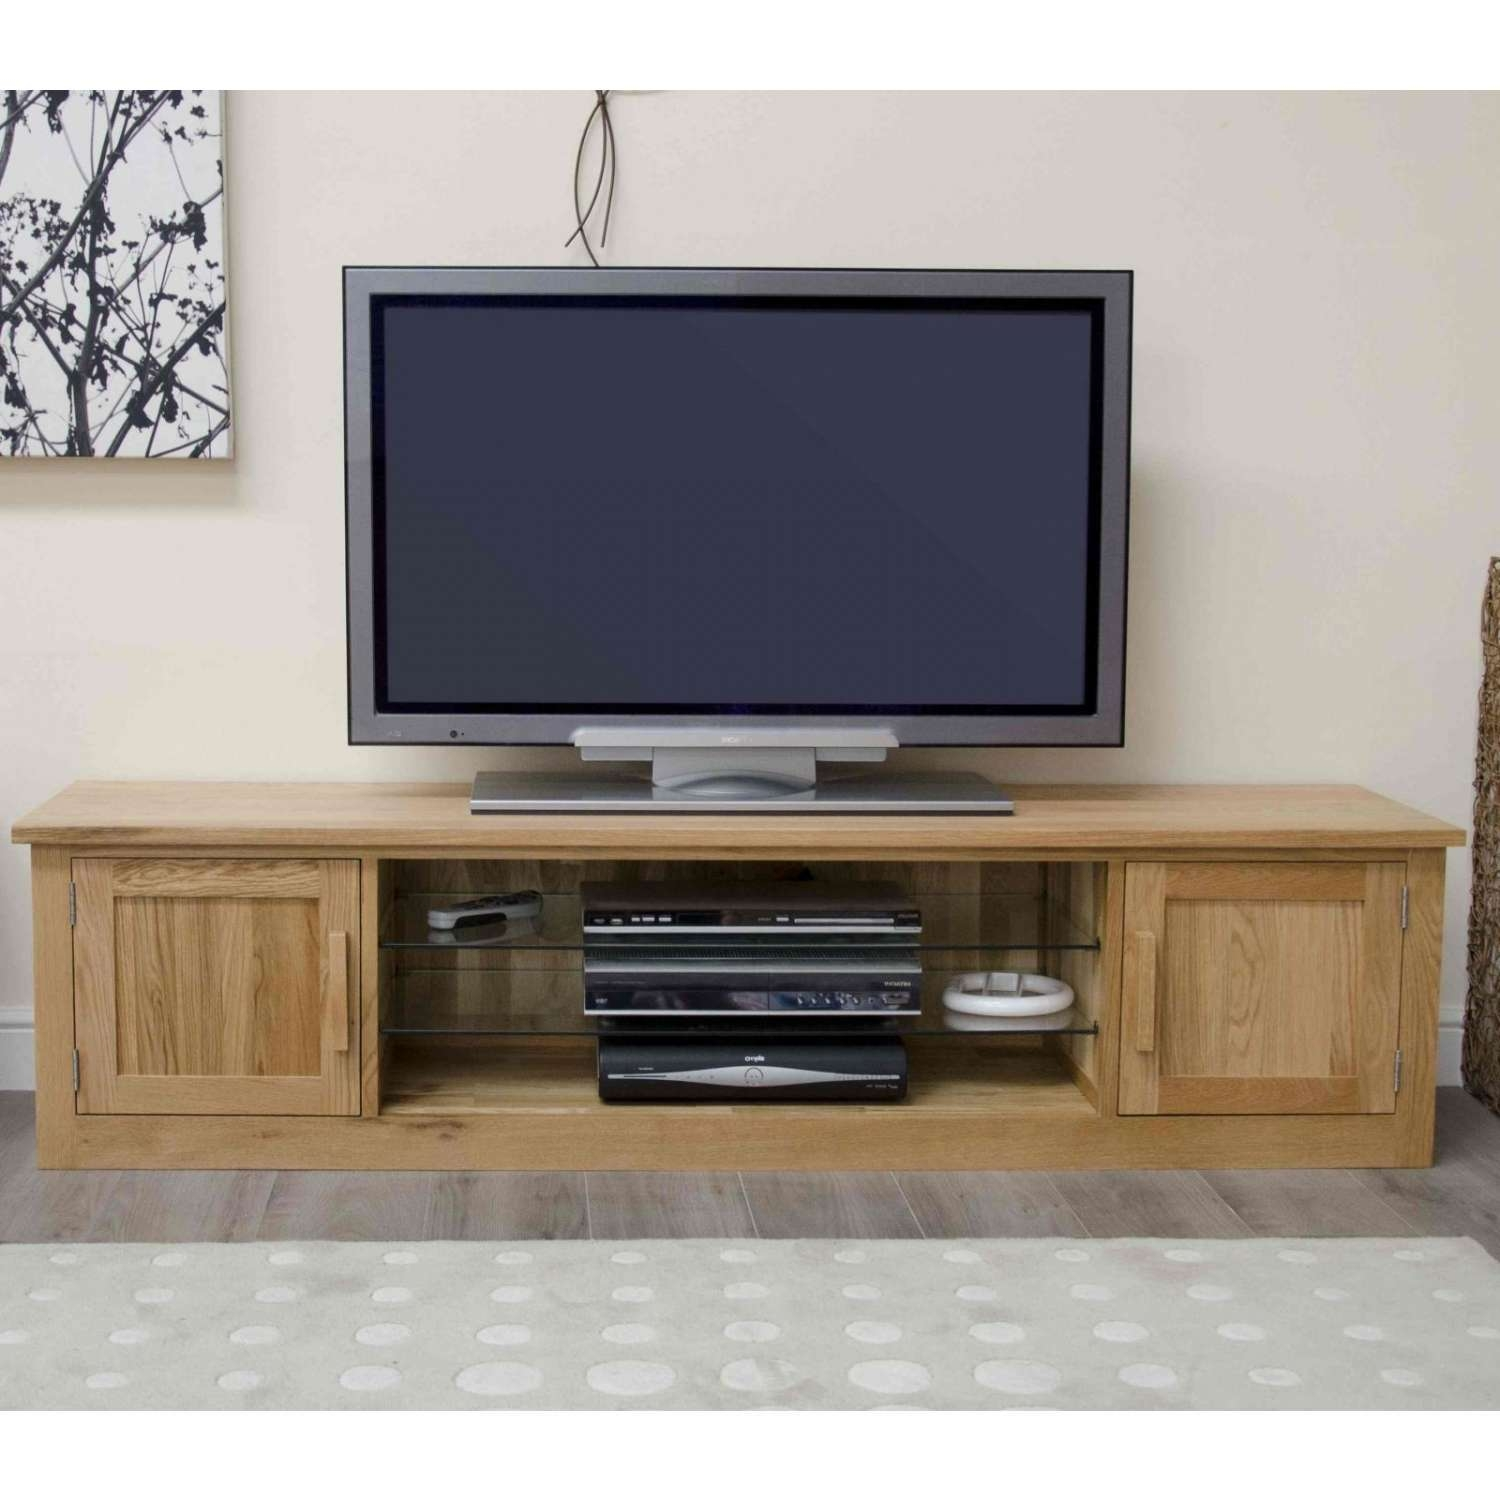 Arden Solid Oak Living Room Furniture Large Widescreen Tv Cabinet With Regard To Solid Oak Tv Stands (View 9 of 15)